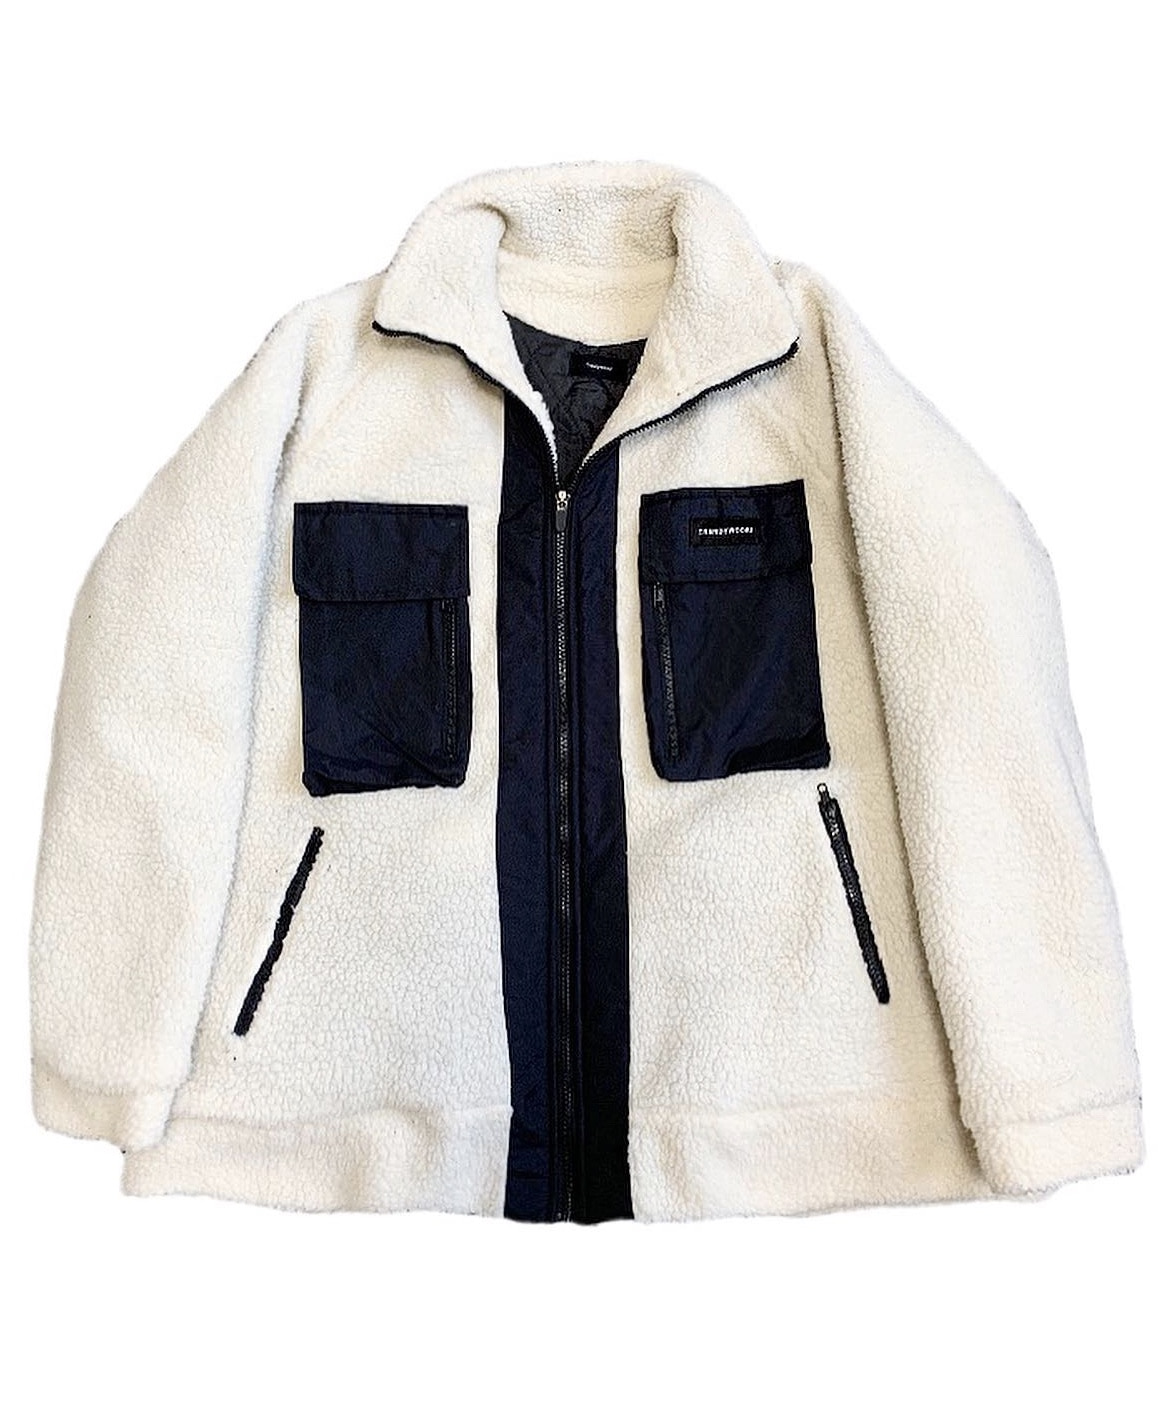 oversize fleece jacket Ivory